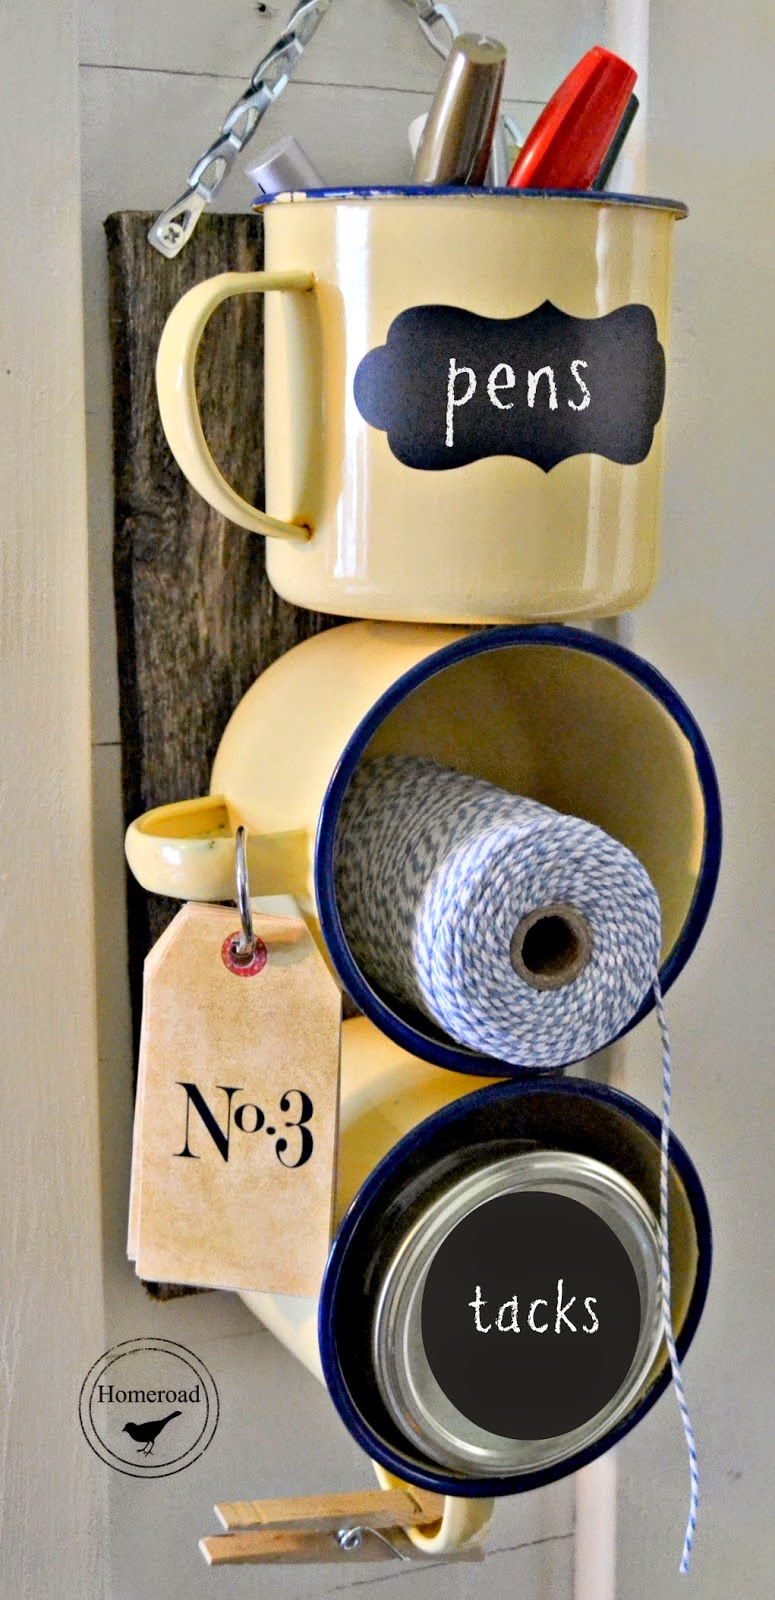 Enamel Mug Organizer and Reloved Magazine